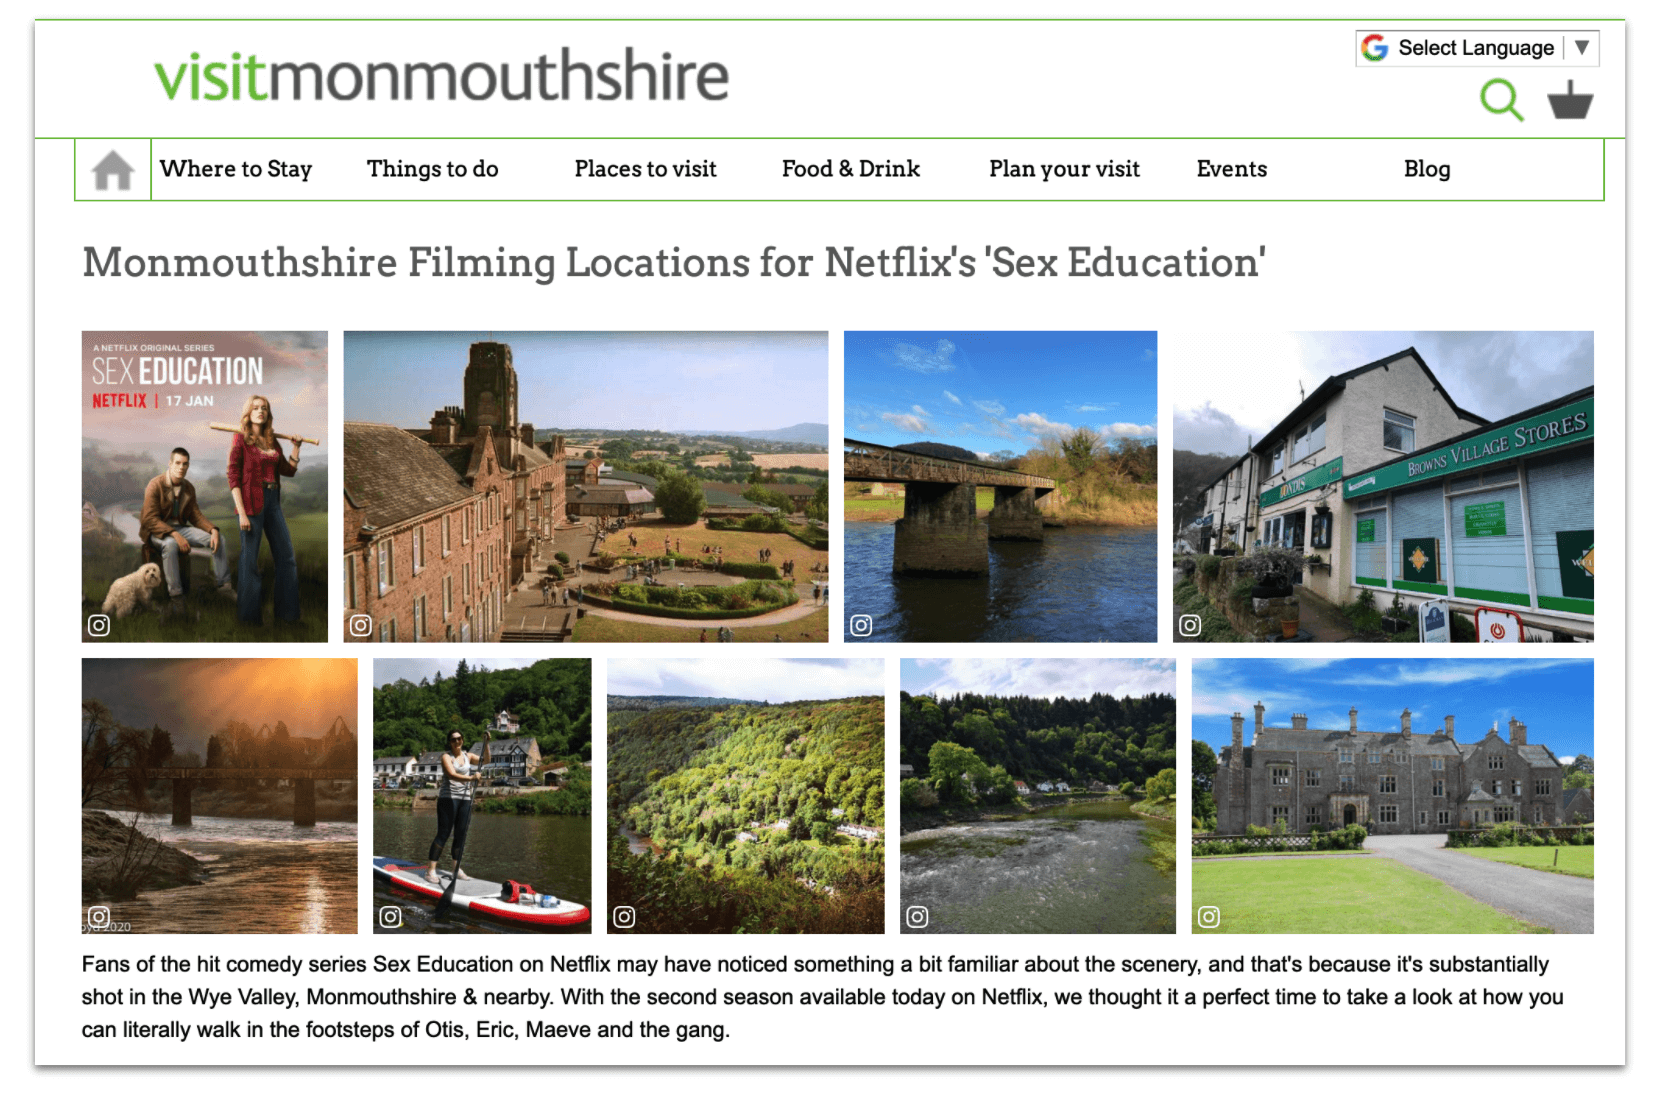 Sex Education filming locations around Monmouthshire